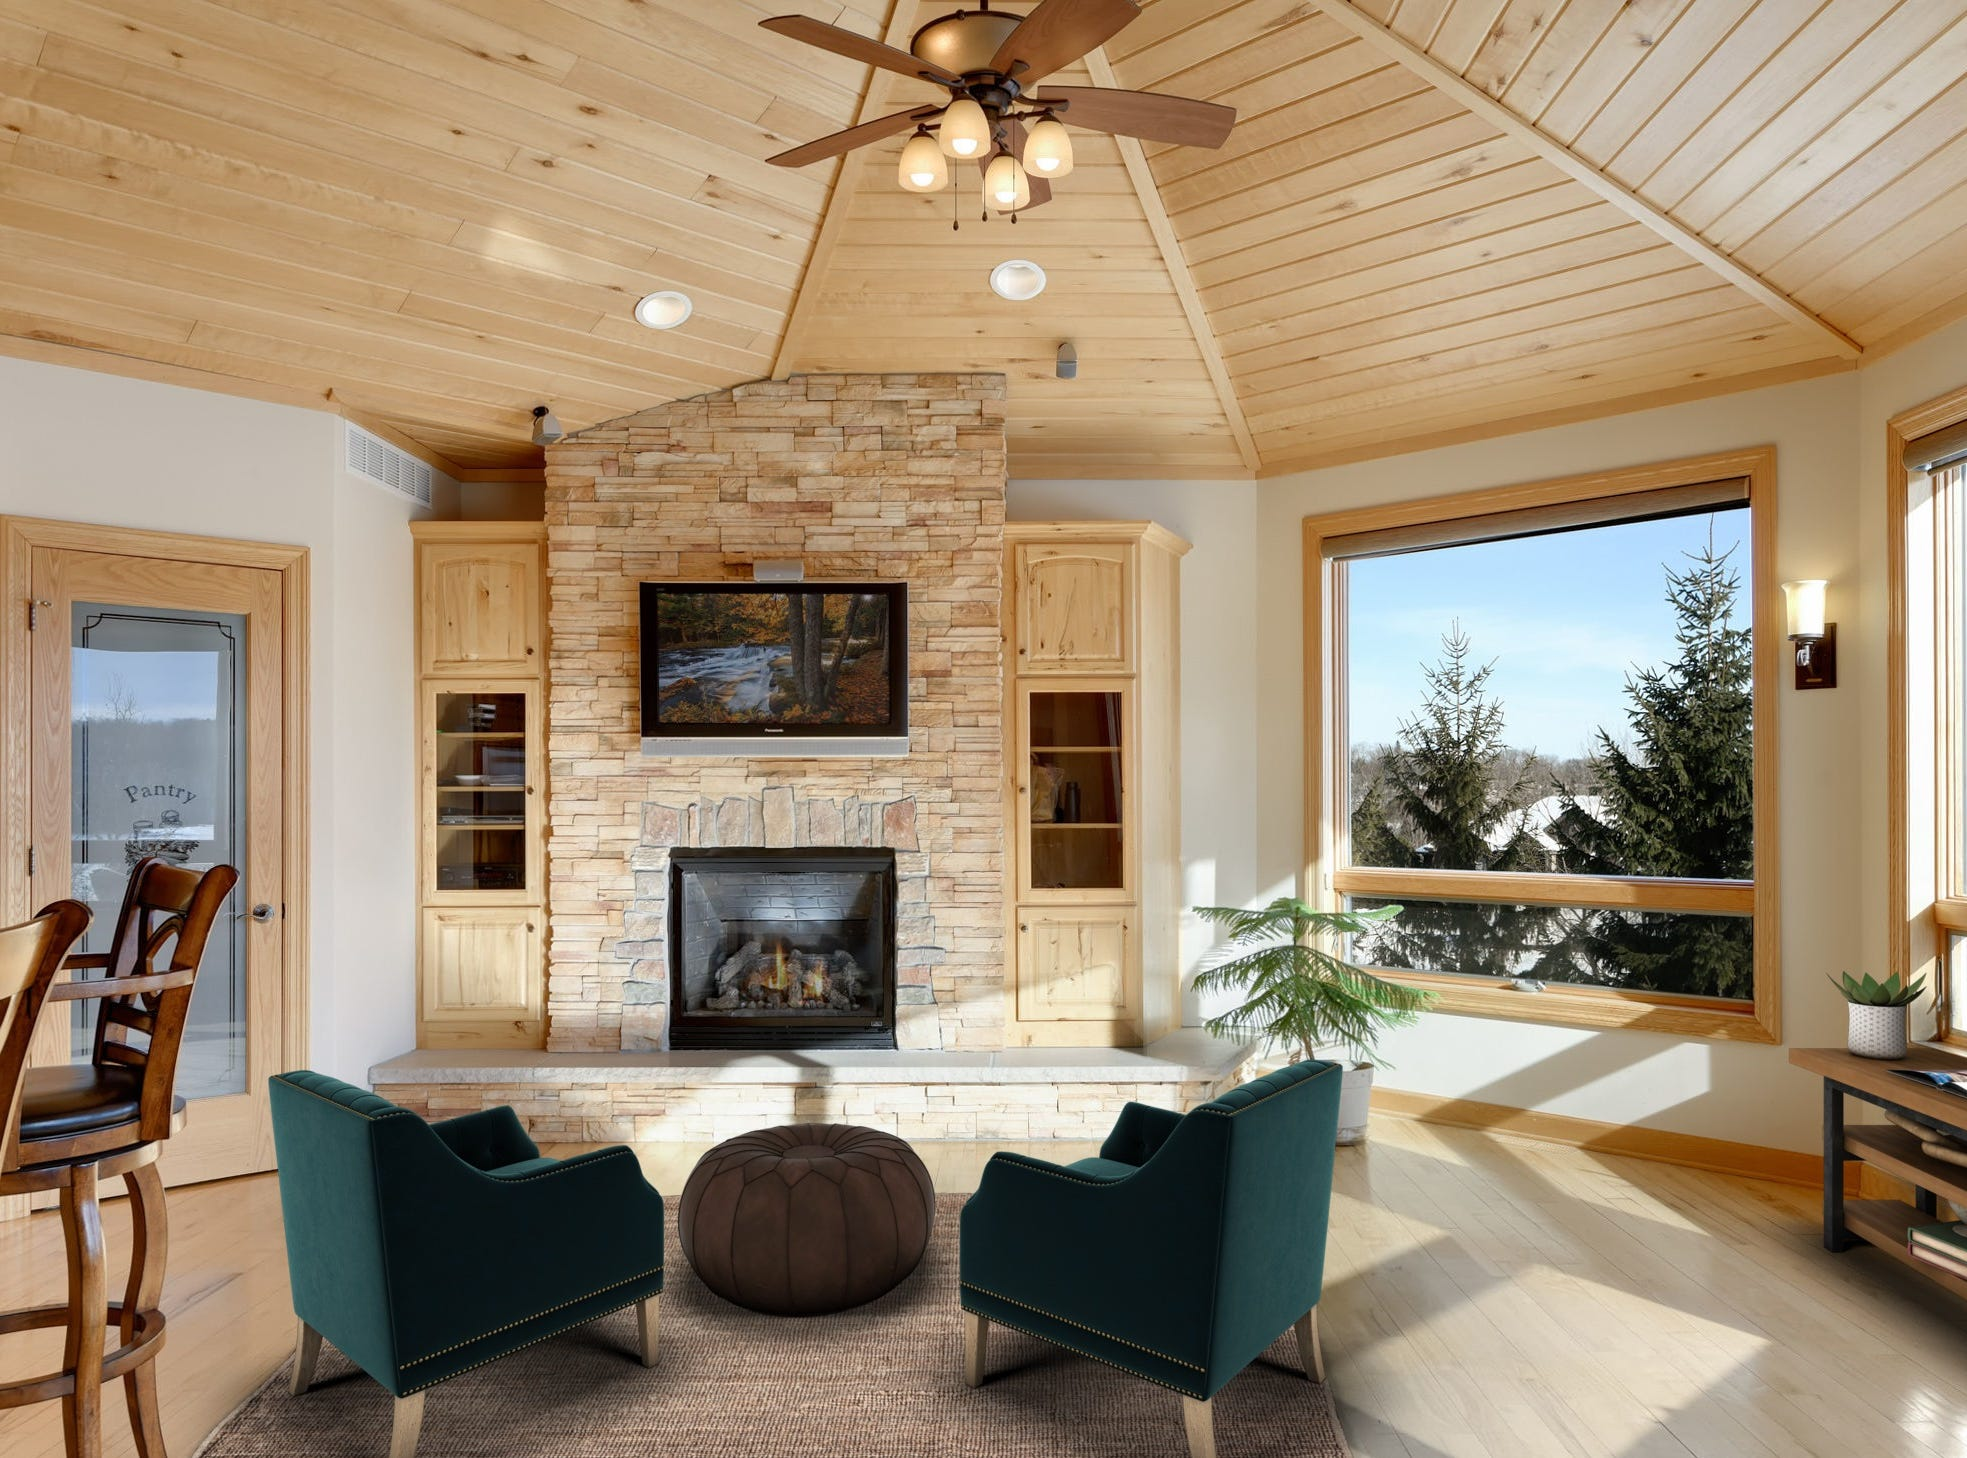 The living room offers a quiet space to relax and entertain and provides access to the large outdoor deck.